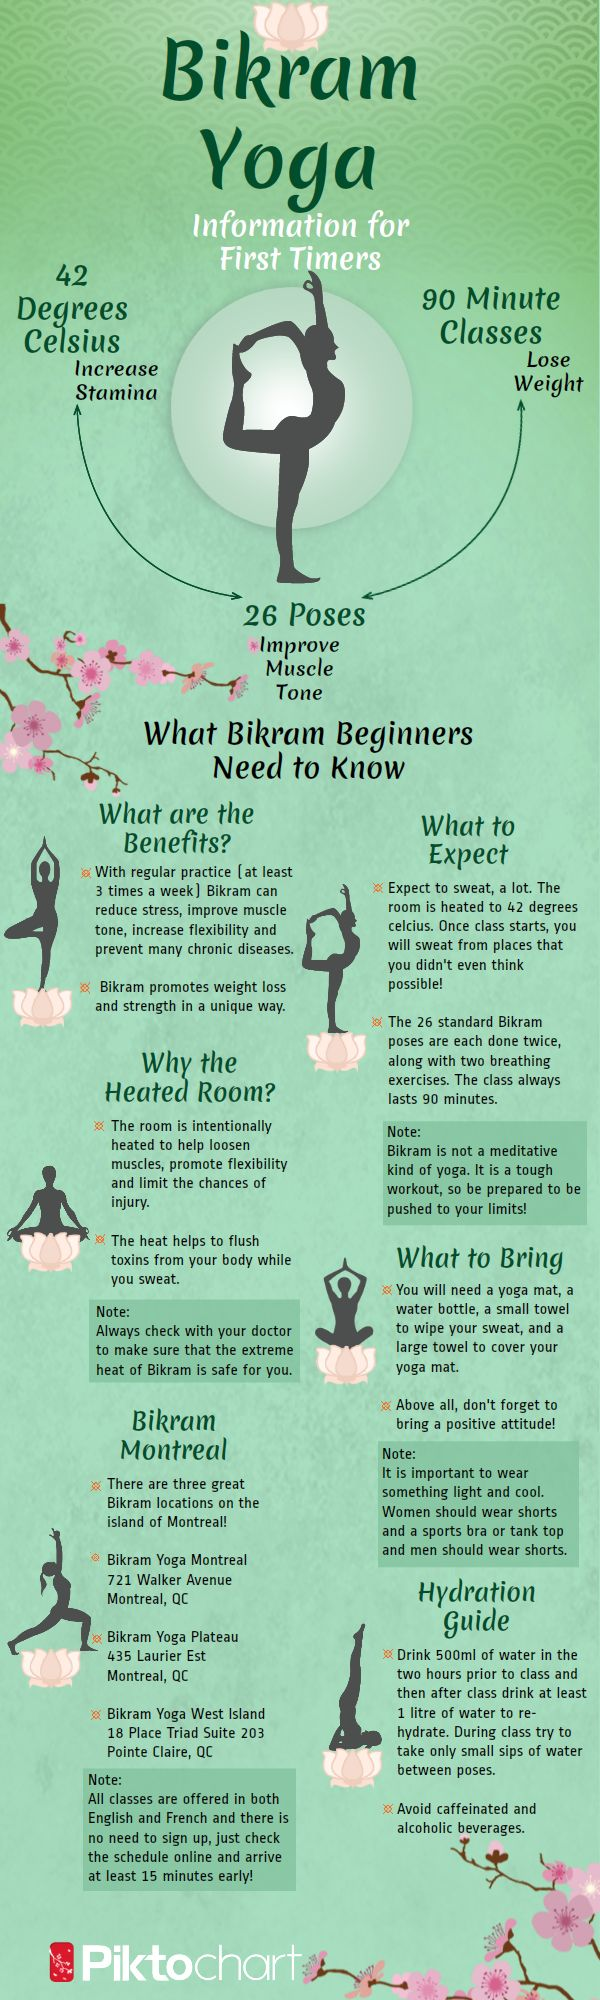 What you need to know about Bikram Yoga Loved and Pinned by www.downdogboutique.com to our Yoga community boards #HotYoga #BikramYoga #Yoga | Loved and pinned by www.downdogboutique.com